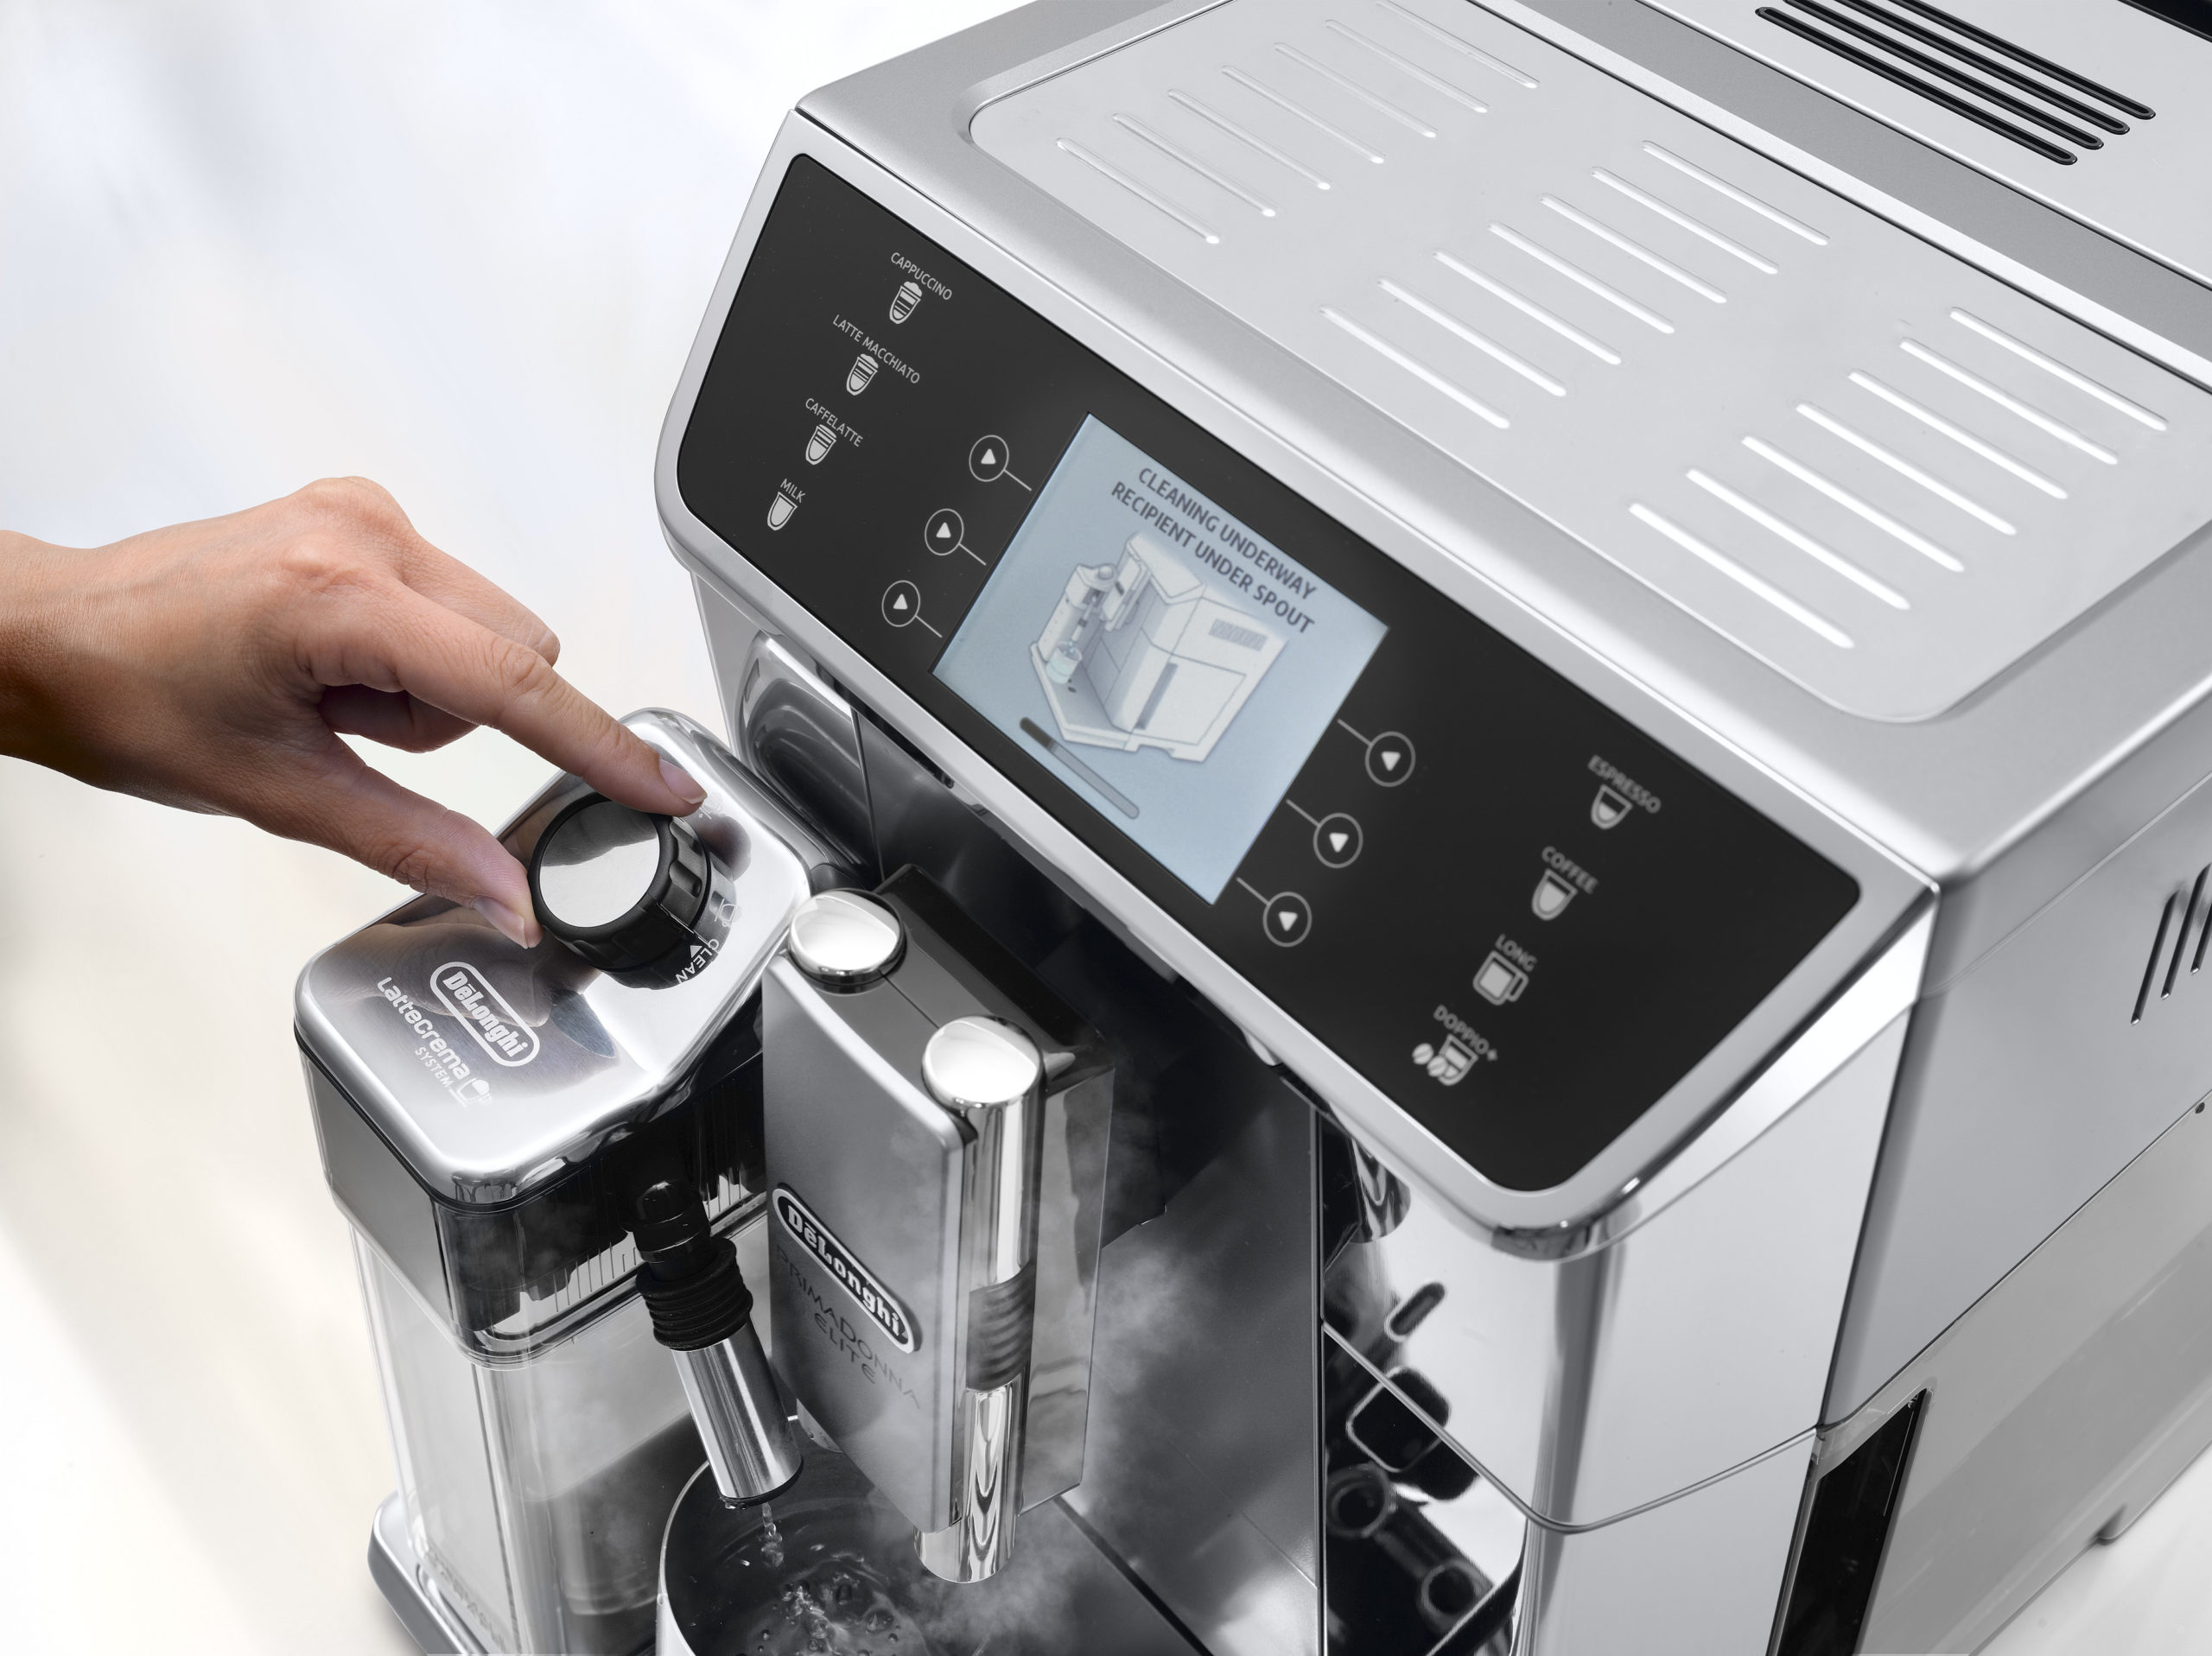 a person turning a knob of a coffee machine